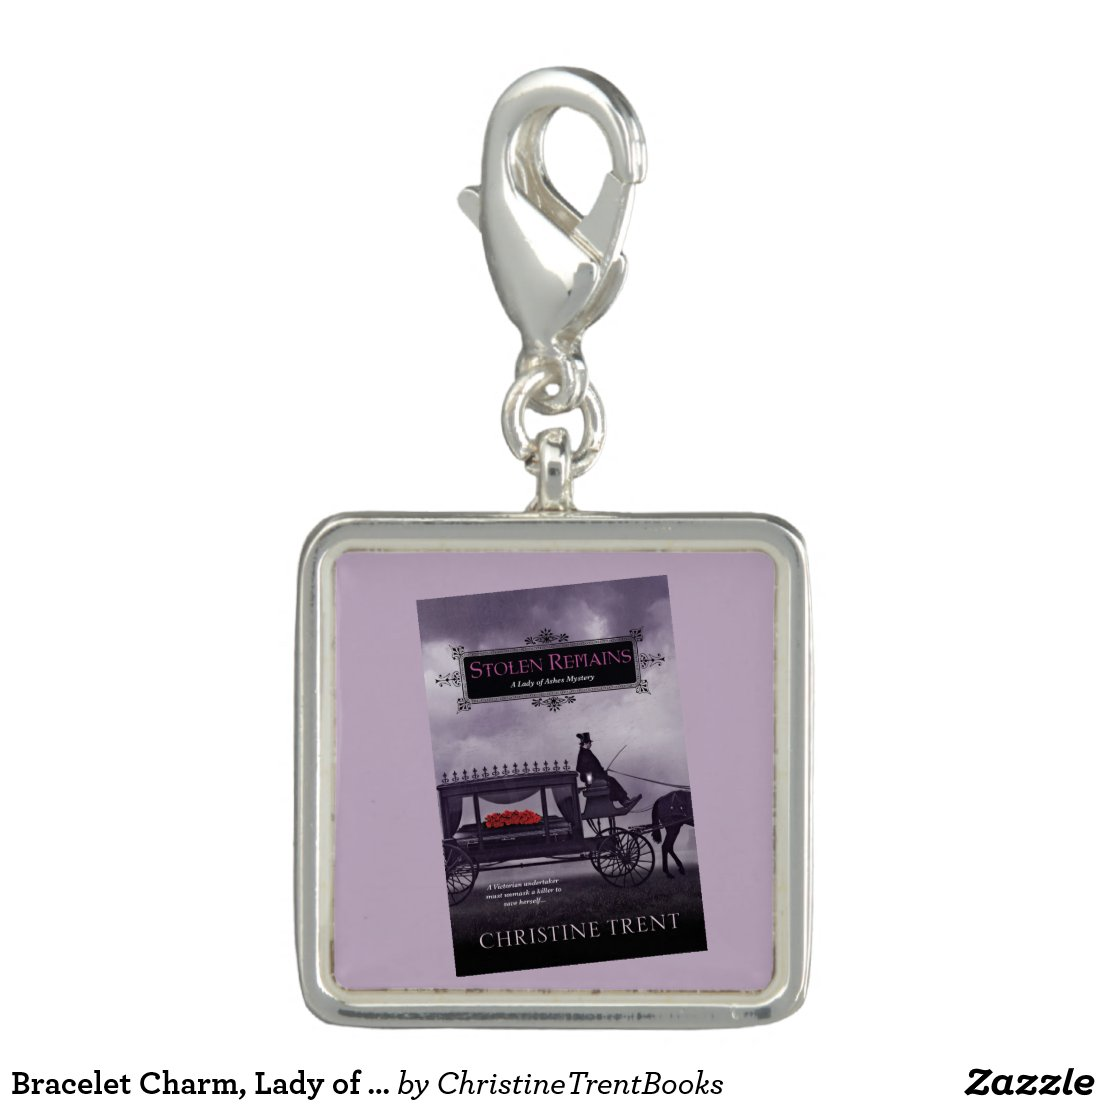 Bracelet Charm, Lady of Ashes, Stolen Remains